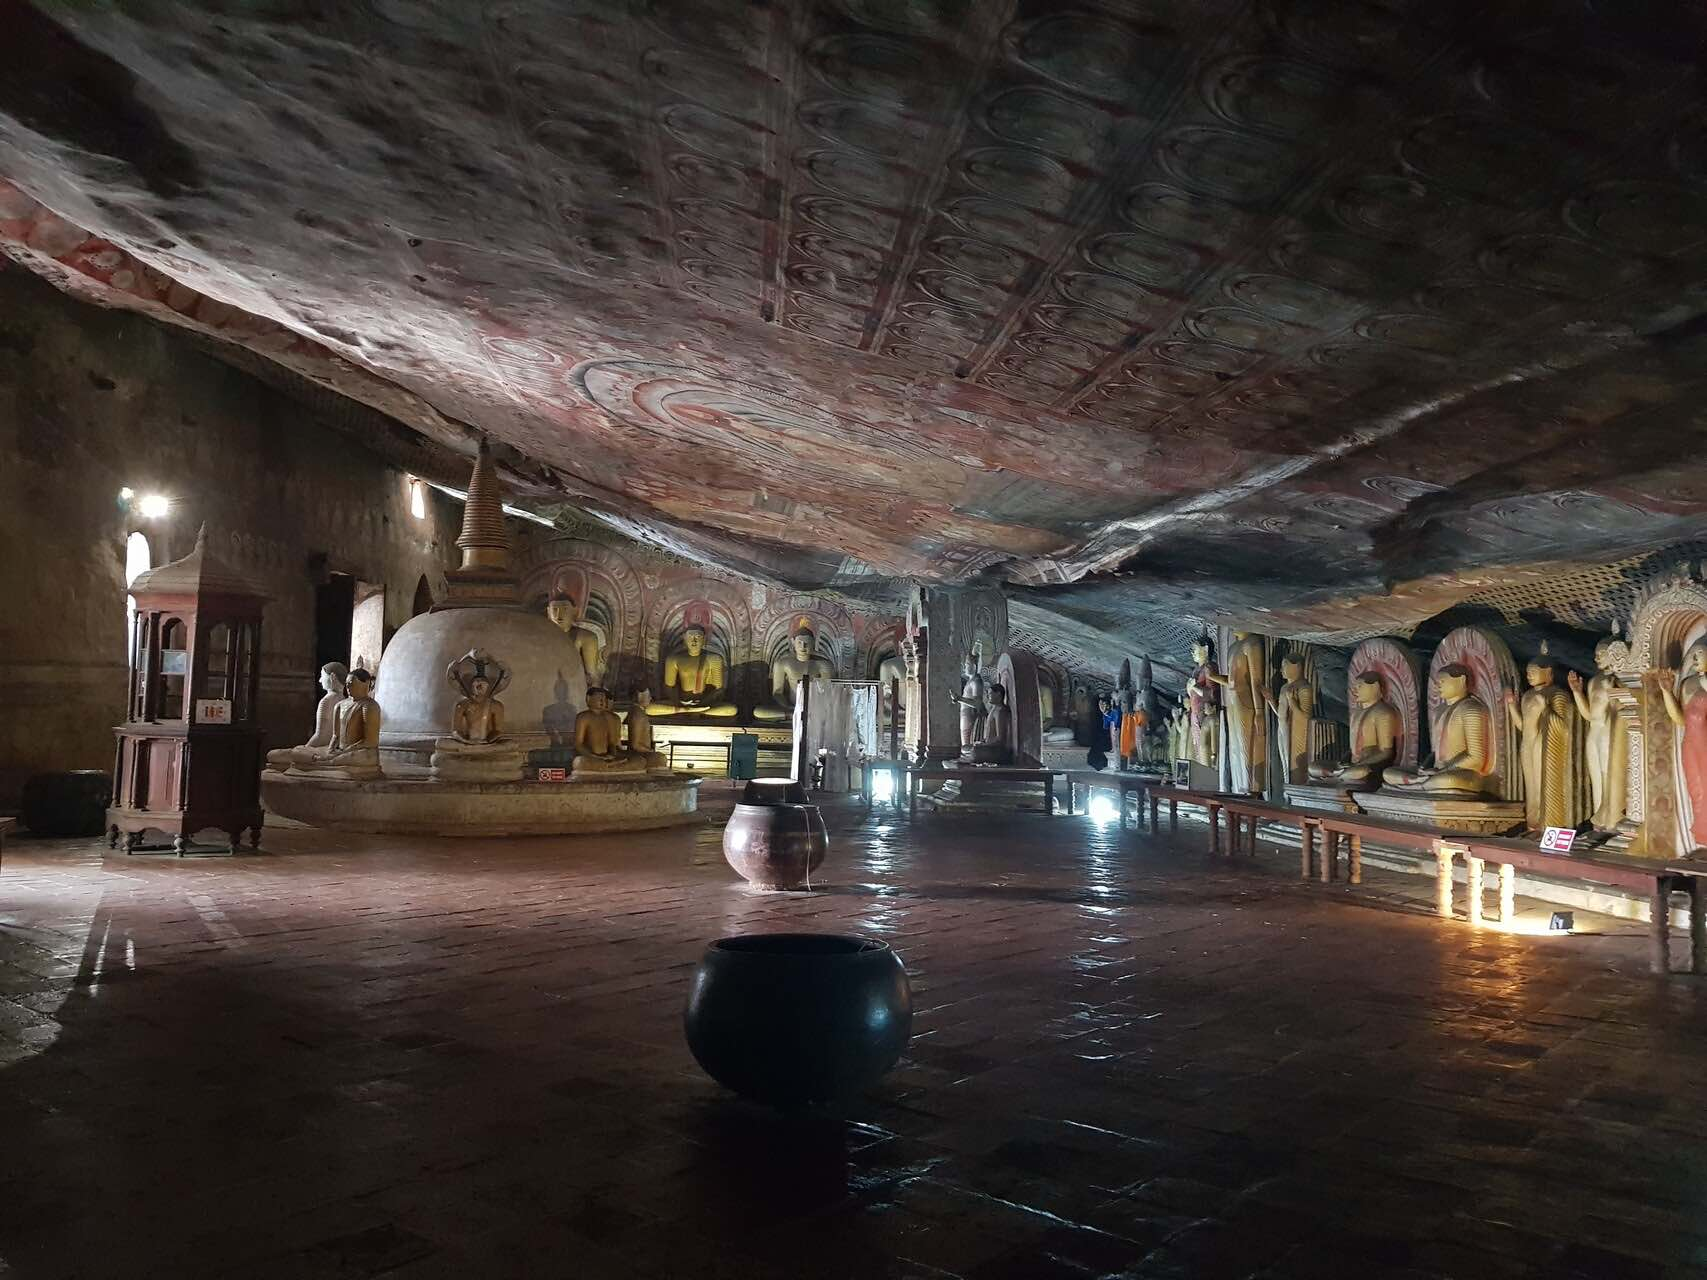 sri-lanka-dambulla-cave-temple-inside-holiday-review-feedback-invite-to-paradise-quentin-kate-hulm.jpg